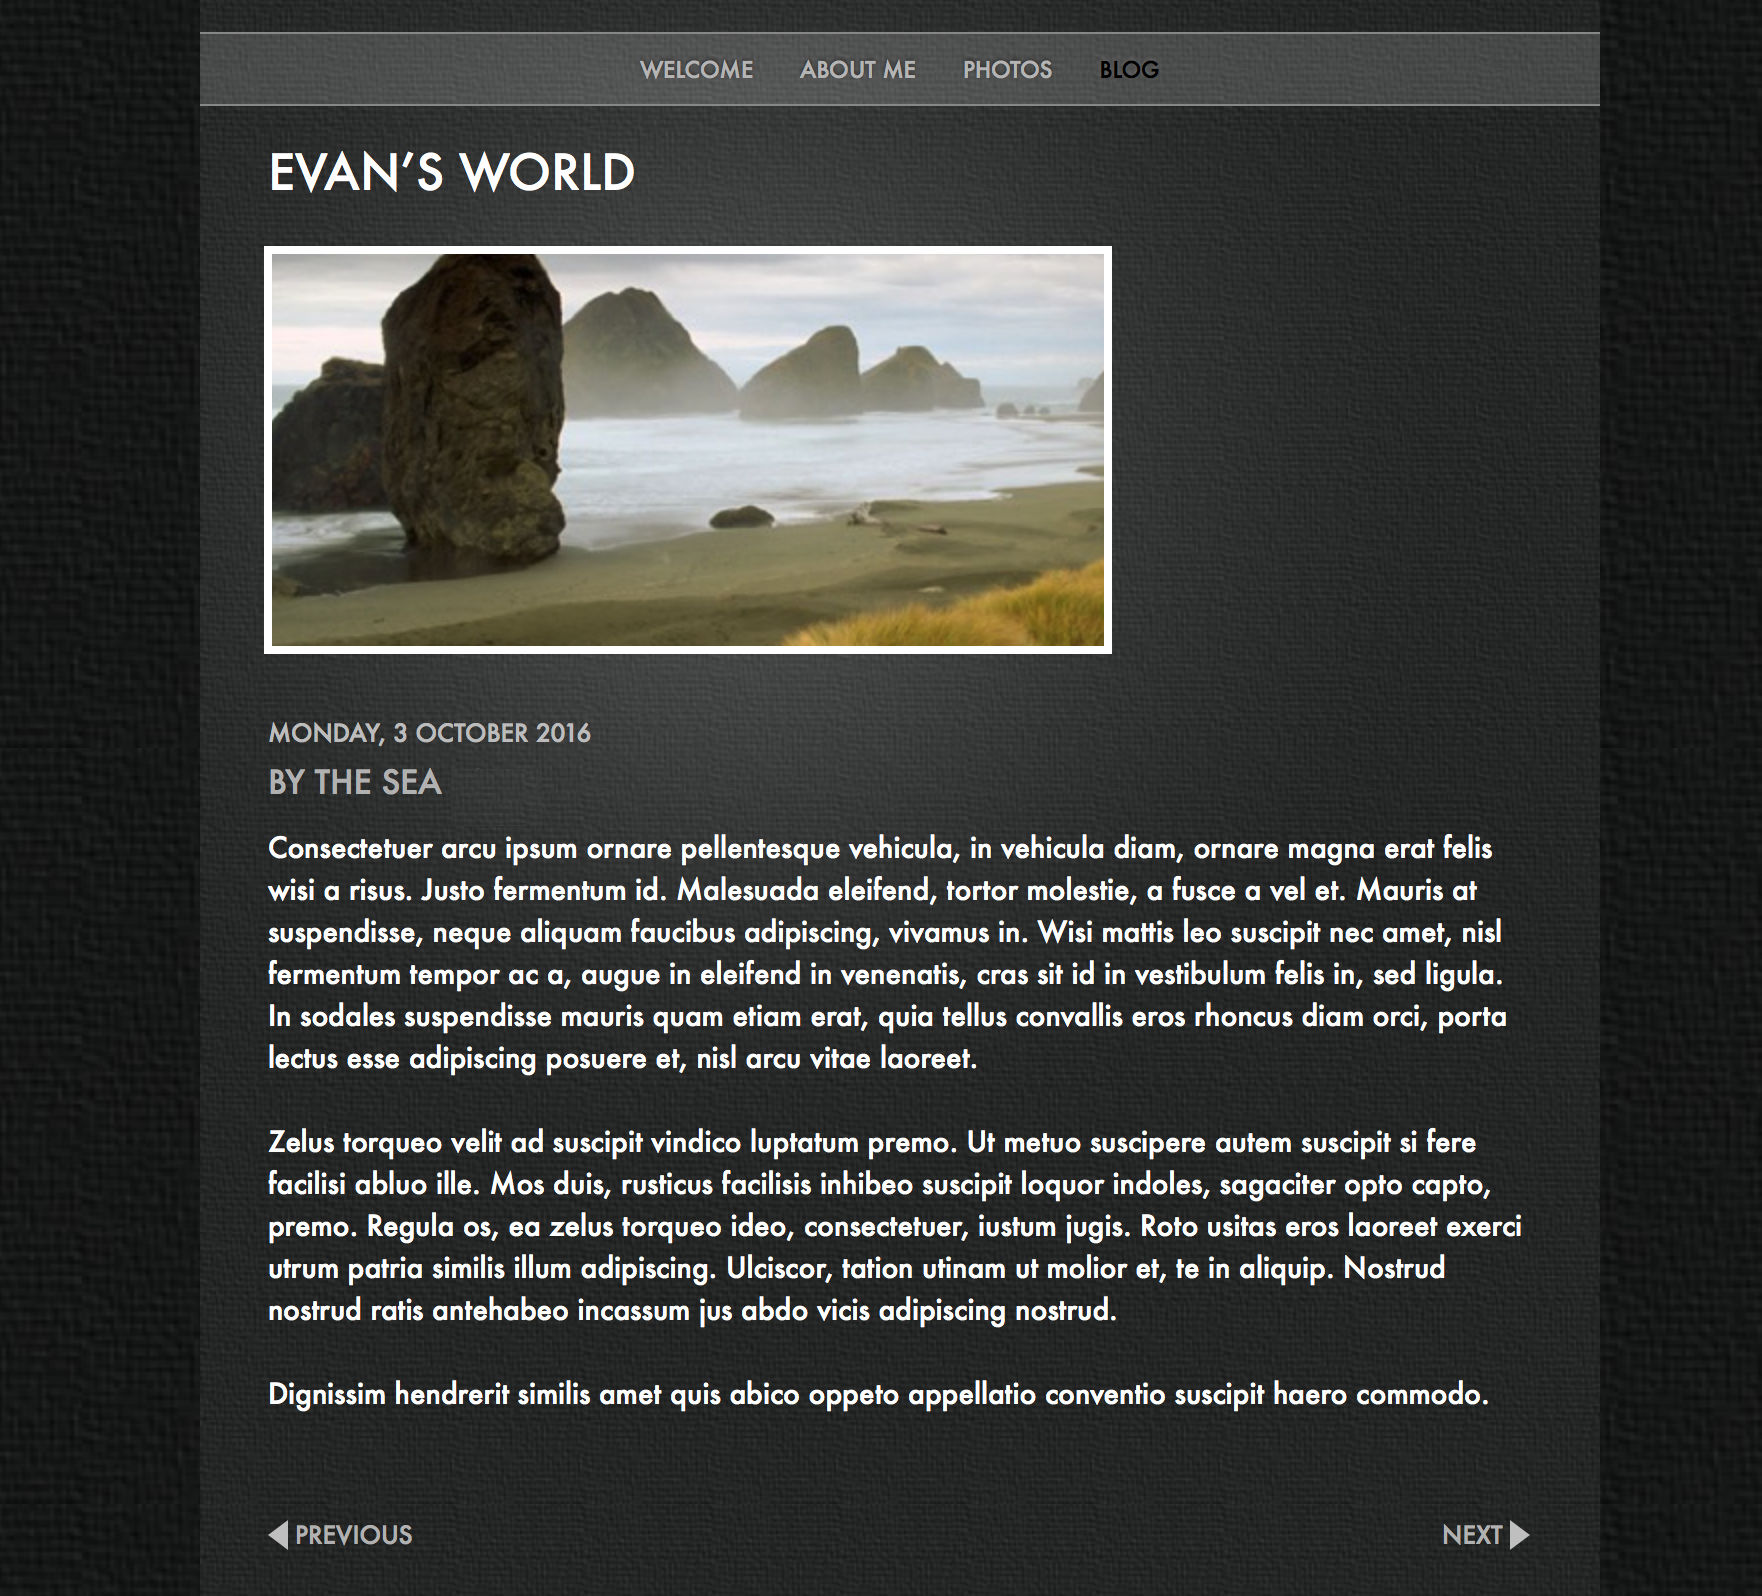 The original blog entry from iWeb can be easily recreated in the new version of EverWeb